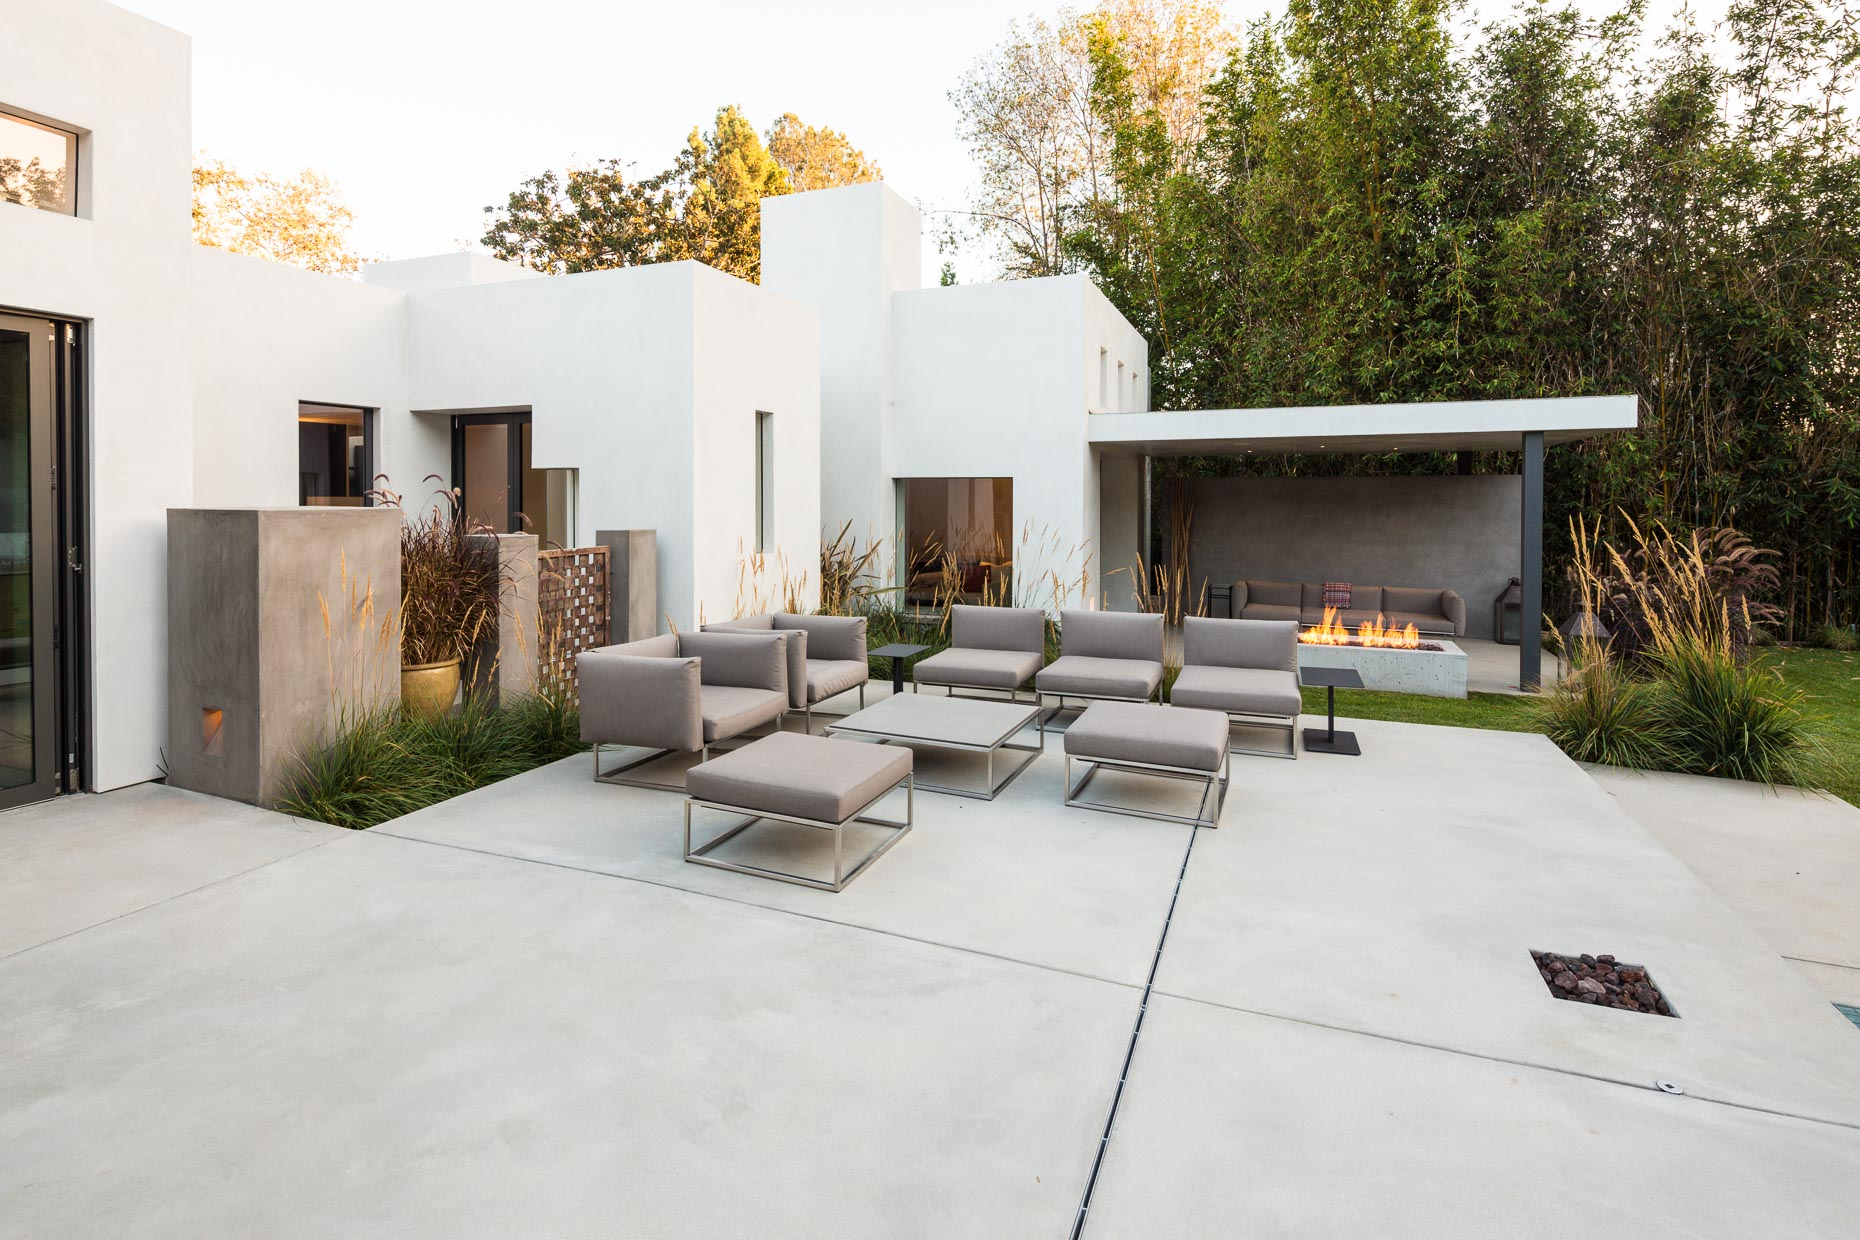 Architecture of estate in Los Angeles, California.